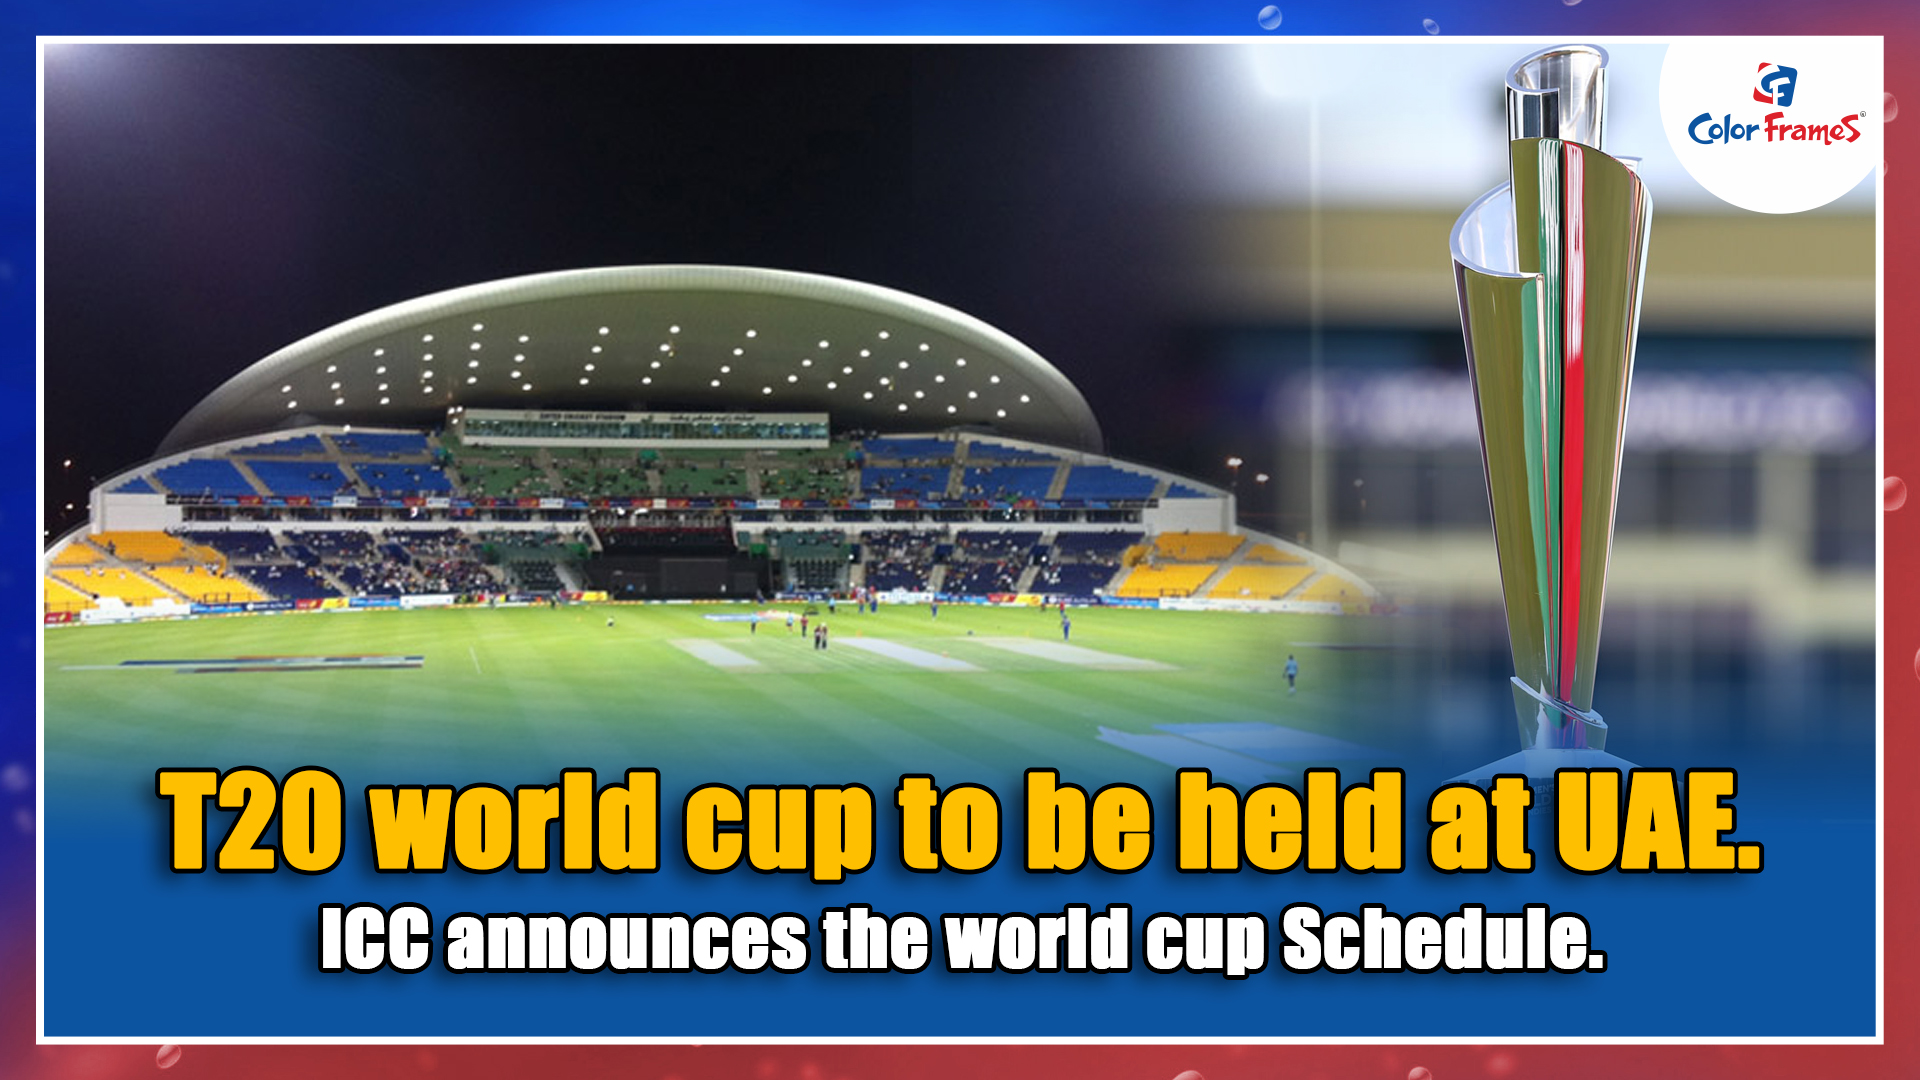 T20 world cup to be held at UAE. ICC announces the world cup Schedule.